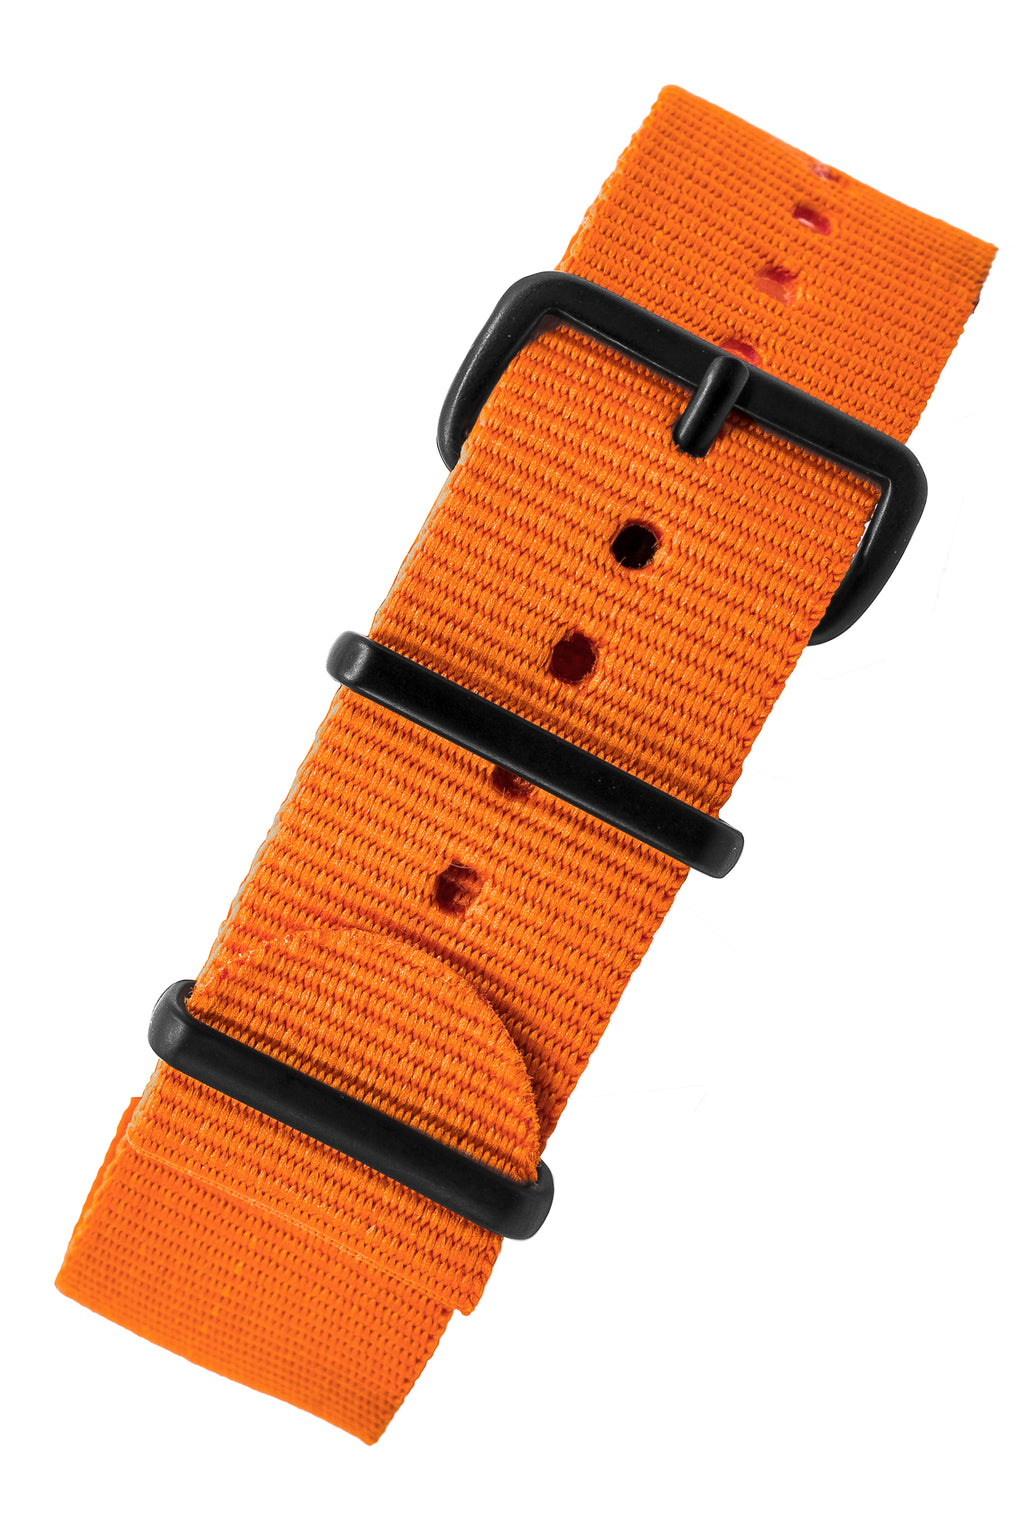 Nato Watch Straps in ORANGE with PVD Buckle and Keepers